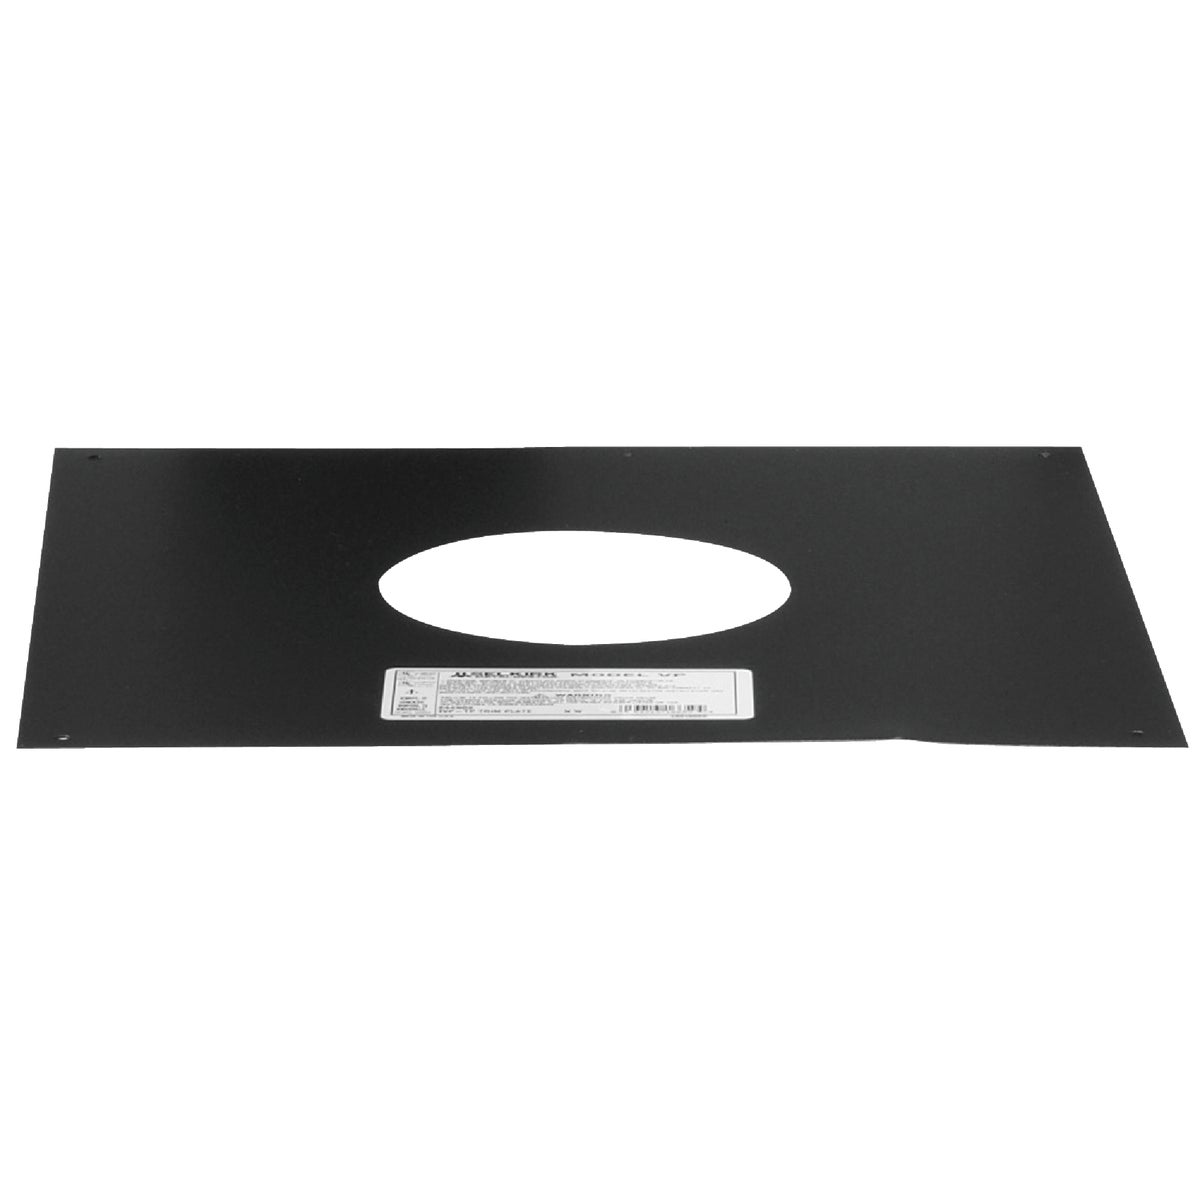 BLK PELLET TRIM PLATE - 3VP-TP by Selkirk Corporation